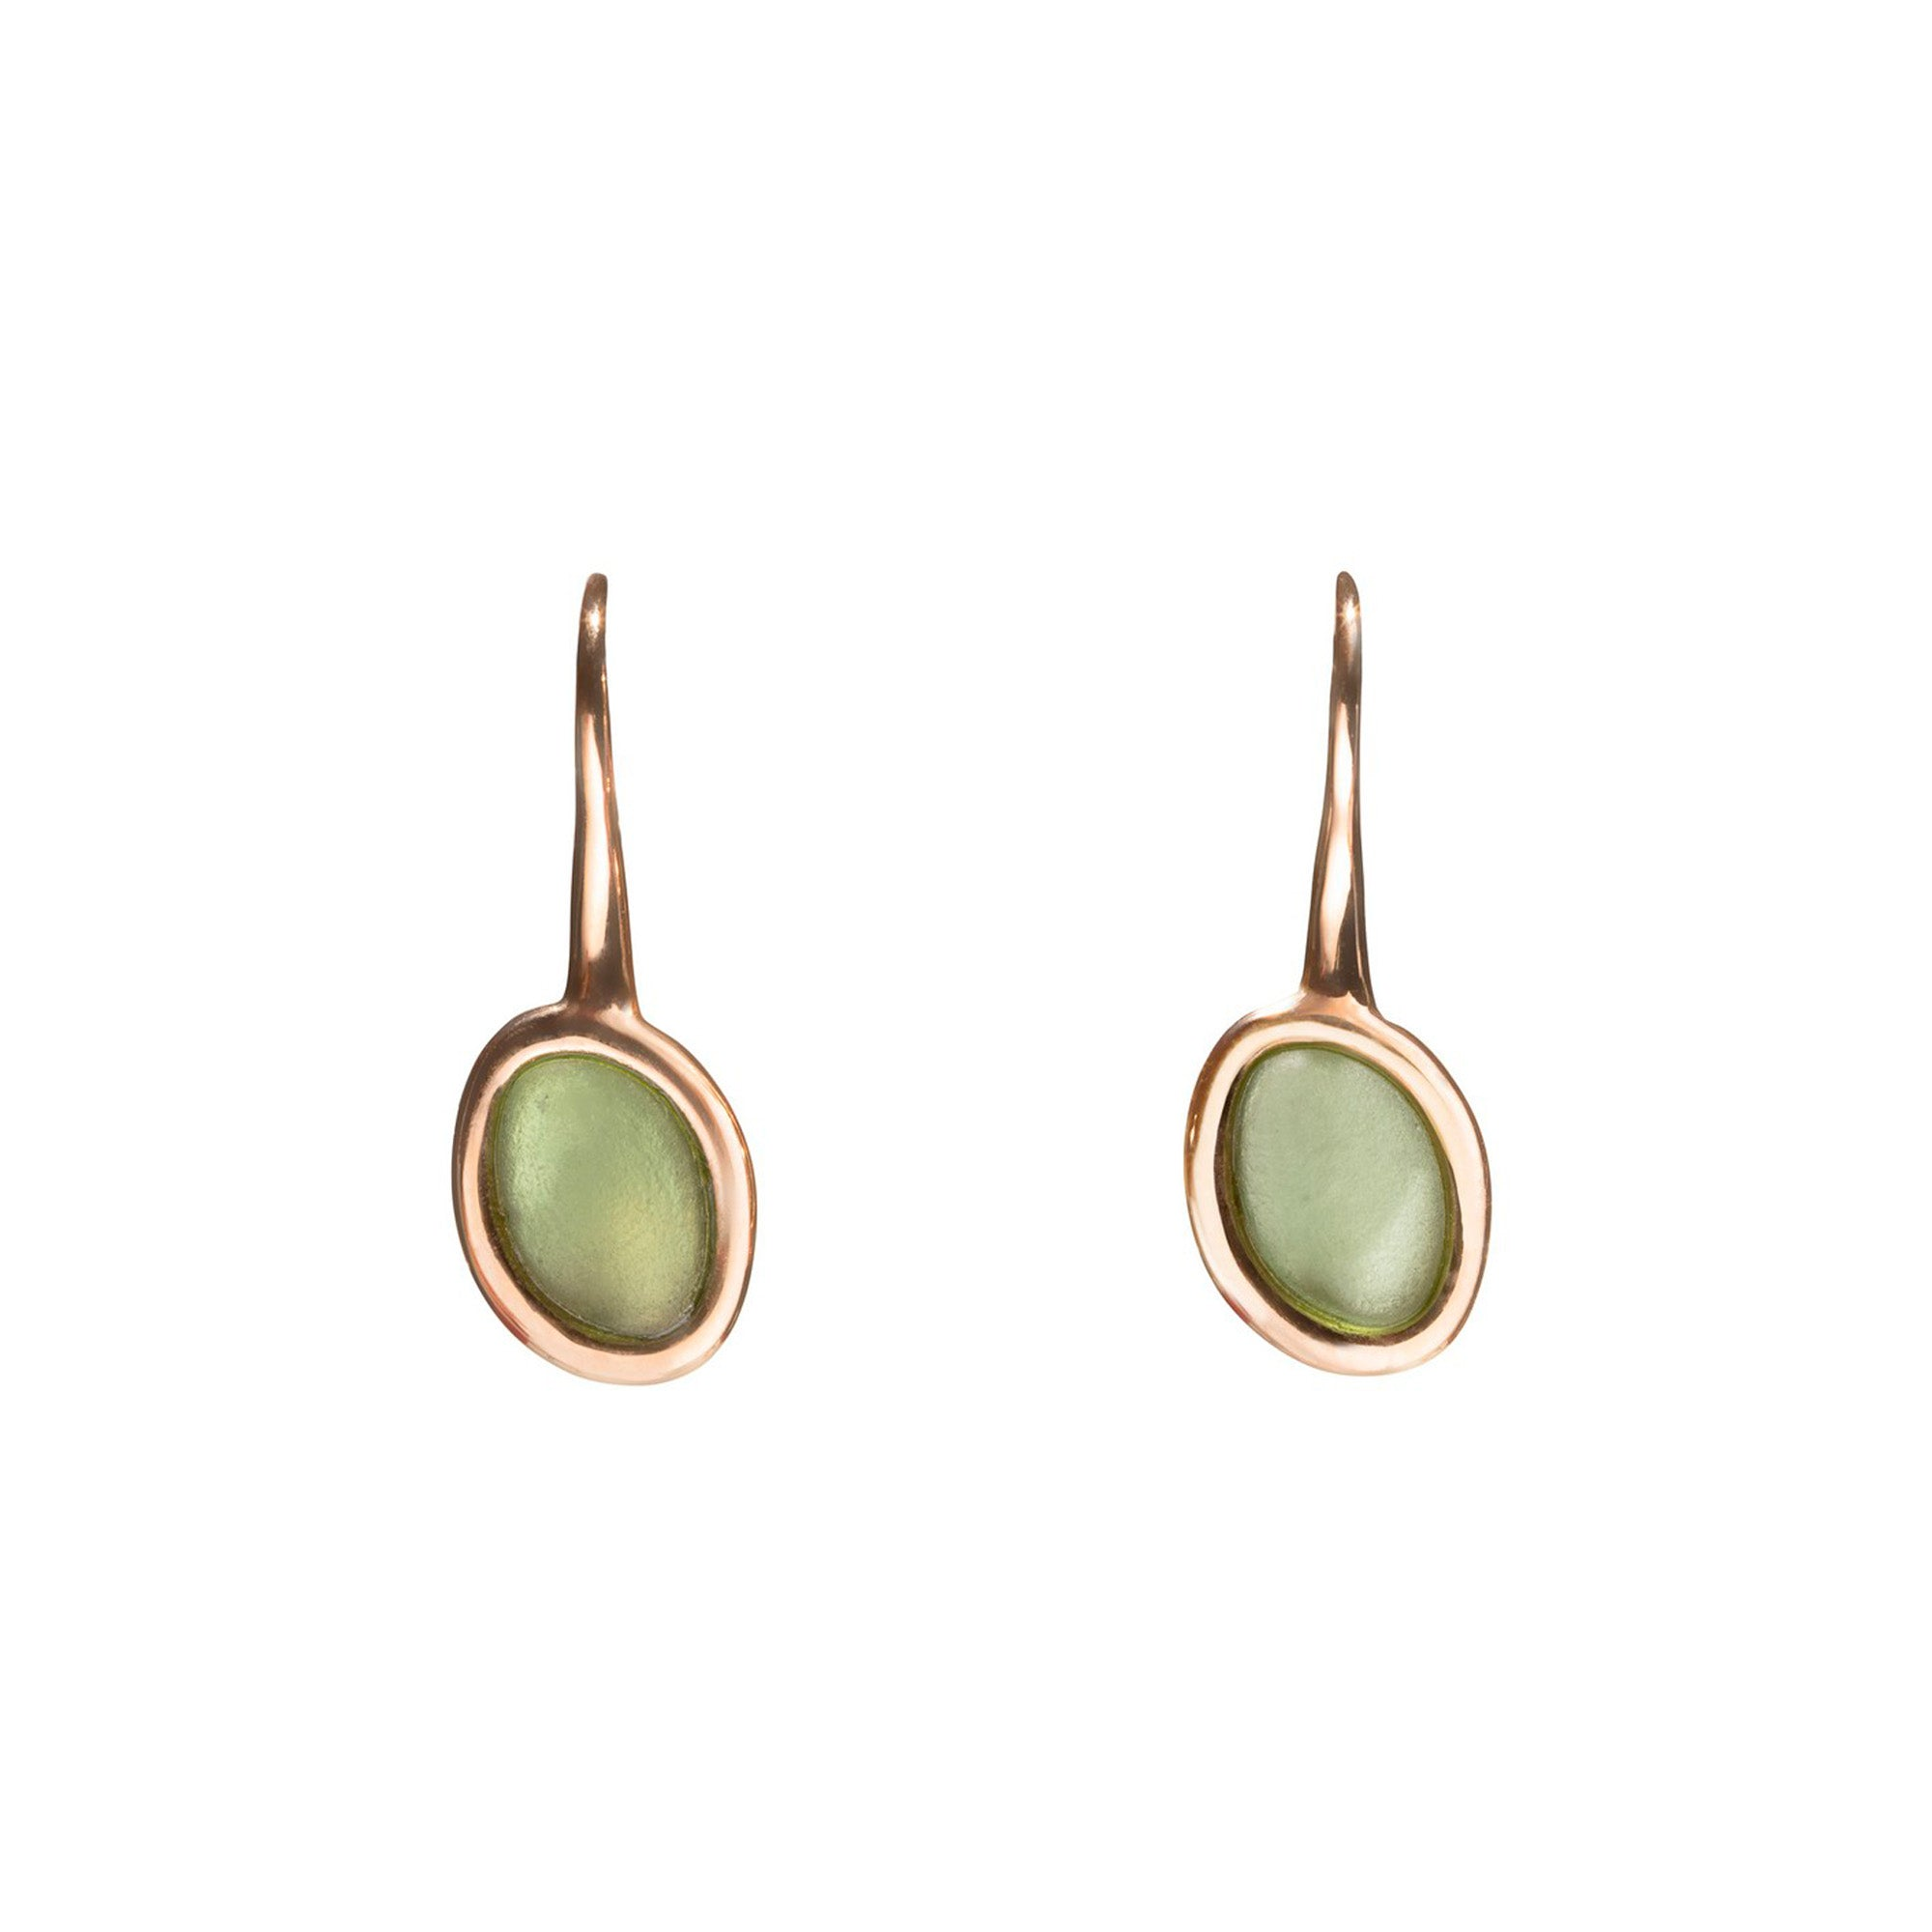 Pria De Ma 9kt Rose Gold Earrings